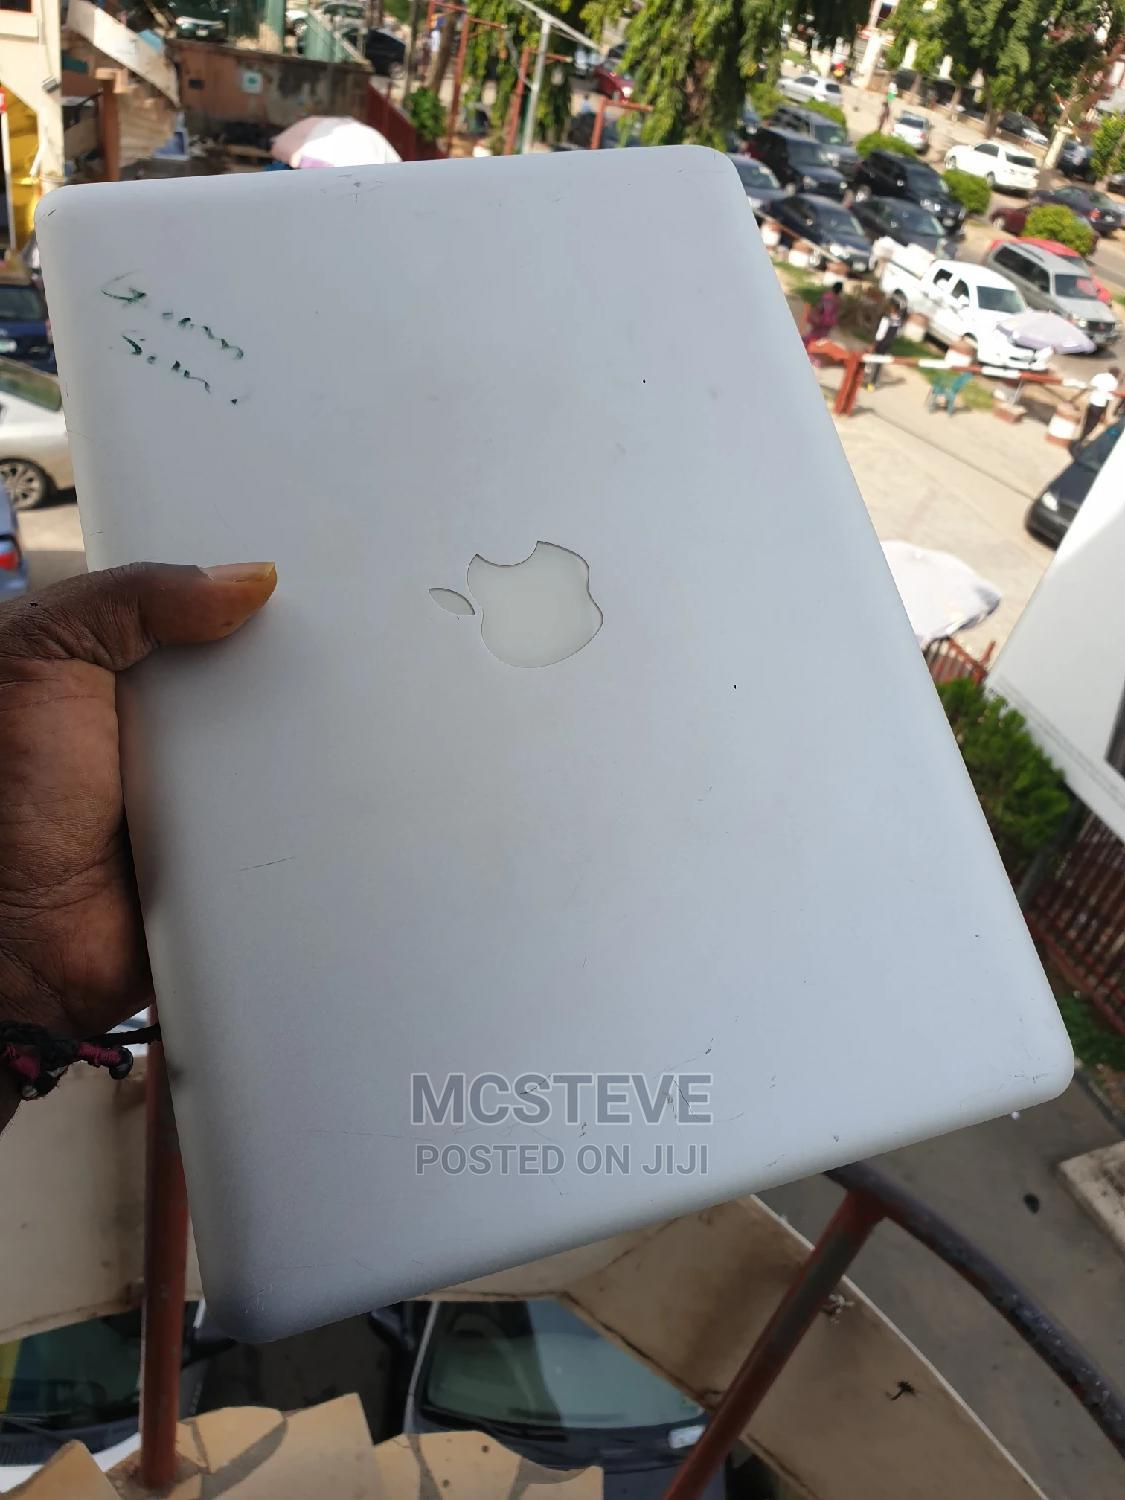 Laptop Apple MacBook Pro 2012 8GB Intel Core I7 HDD 500GB | Laptops & Computers for sale in Wuse 2, Abuja (FCT) State, Nigeria